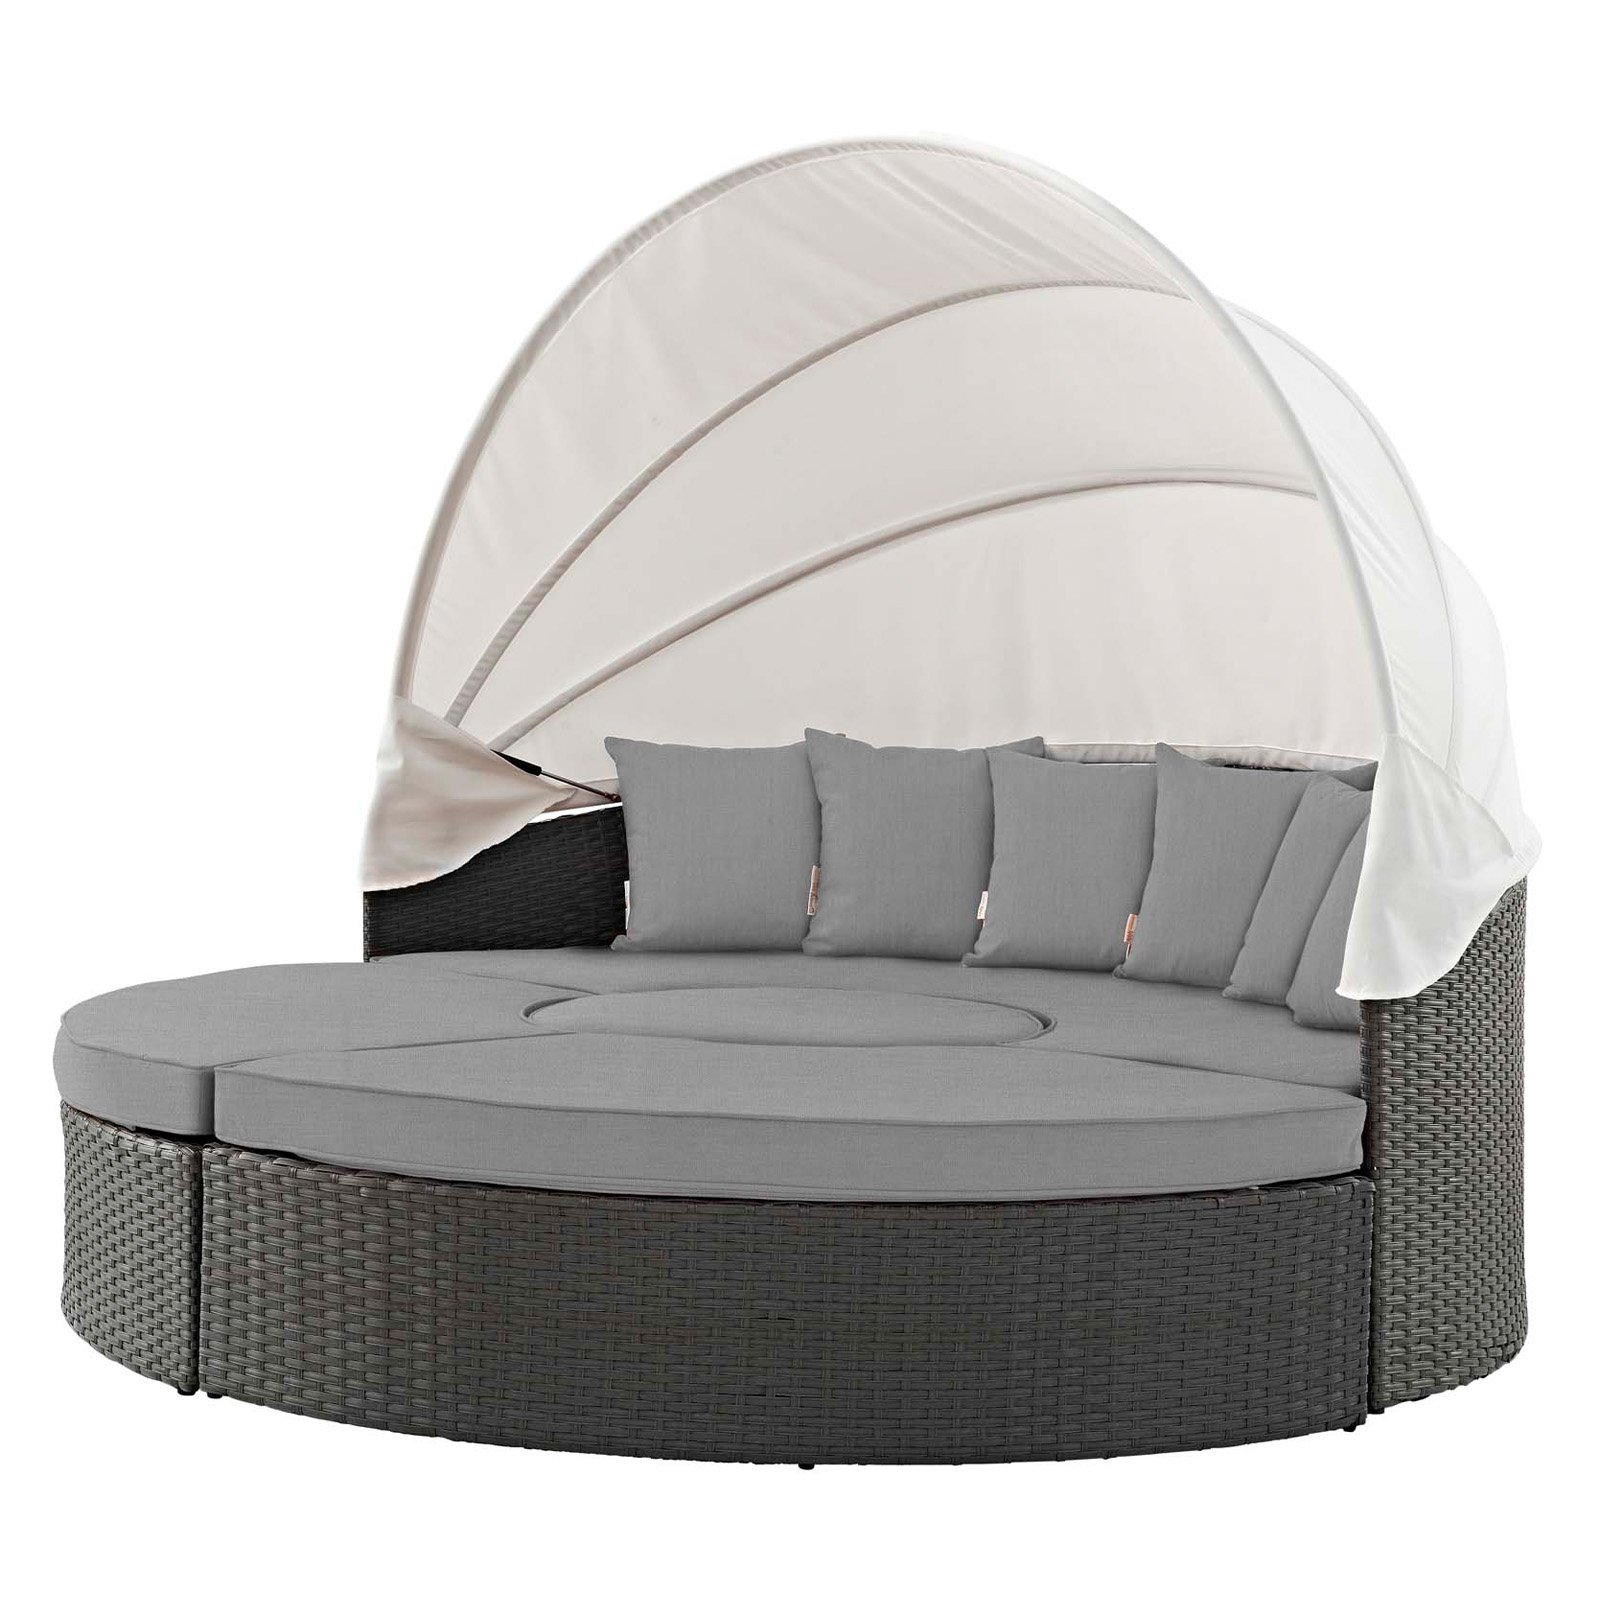 Trendy Outdoor Modway Sojourn Wicker Patio Daybed With Canopy With Within Harlow Patio Daybeds With Cushions (View 19 of 20)